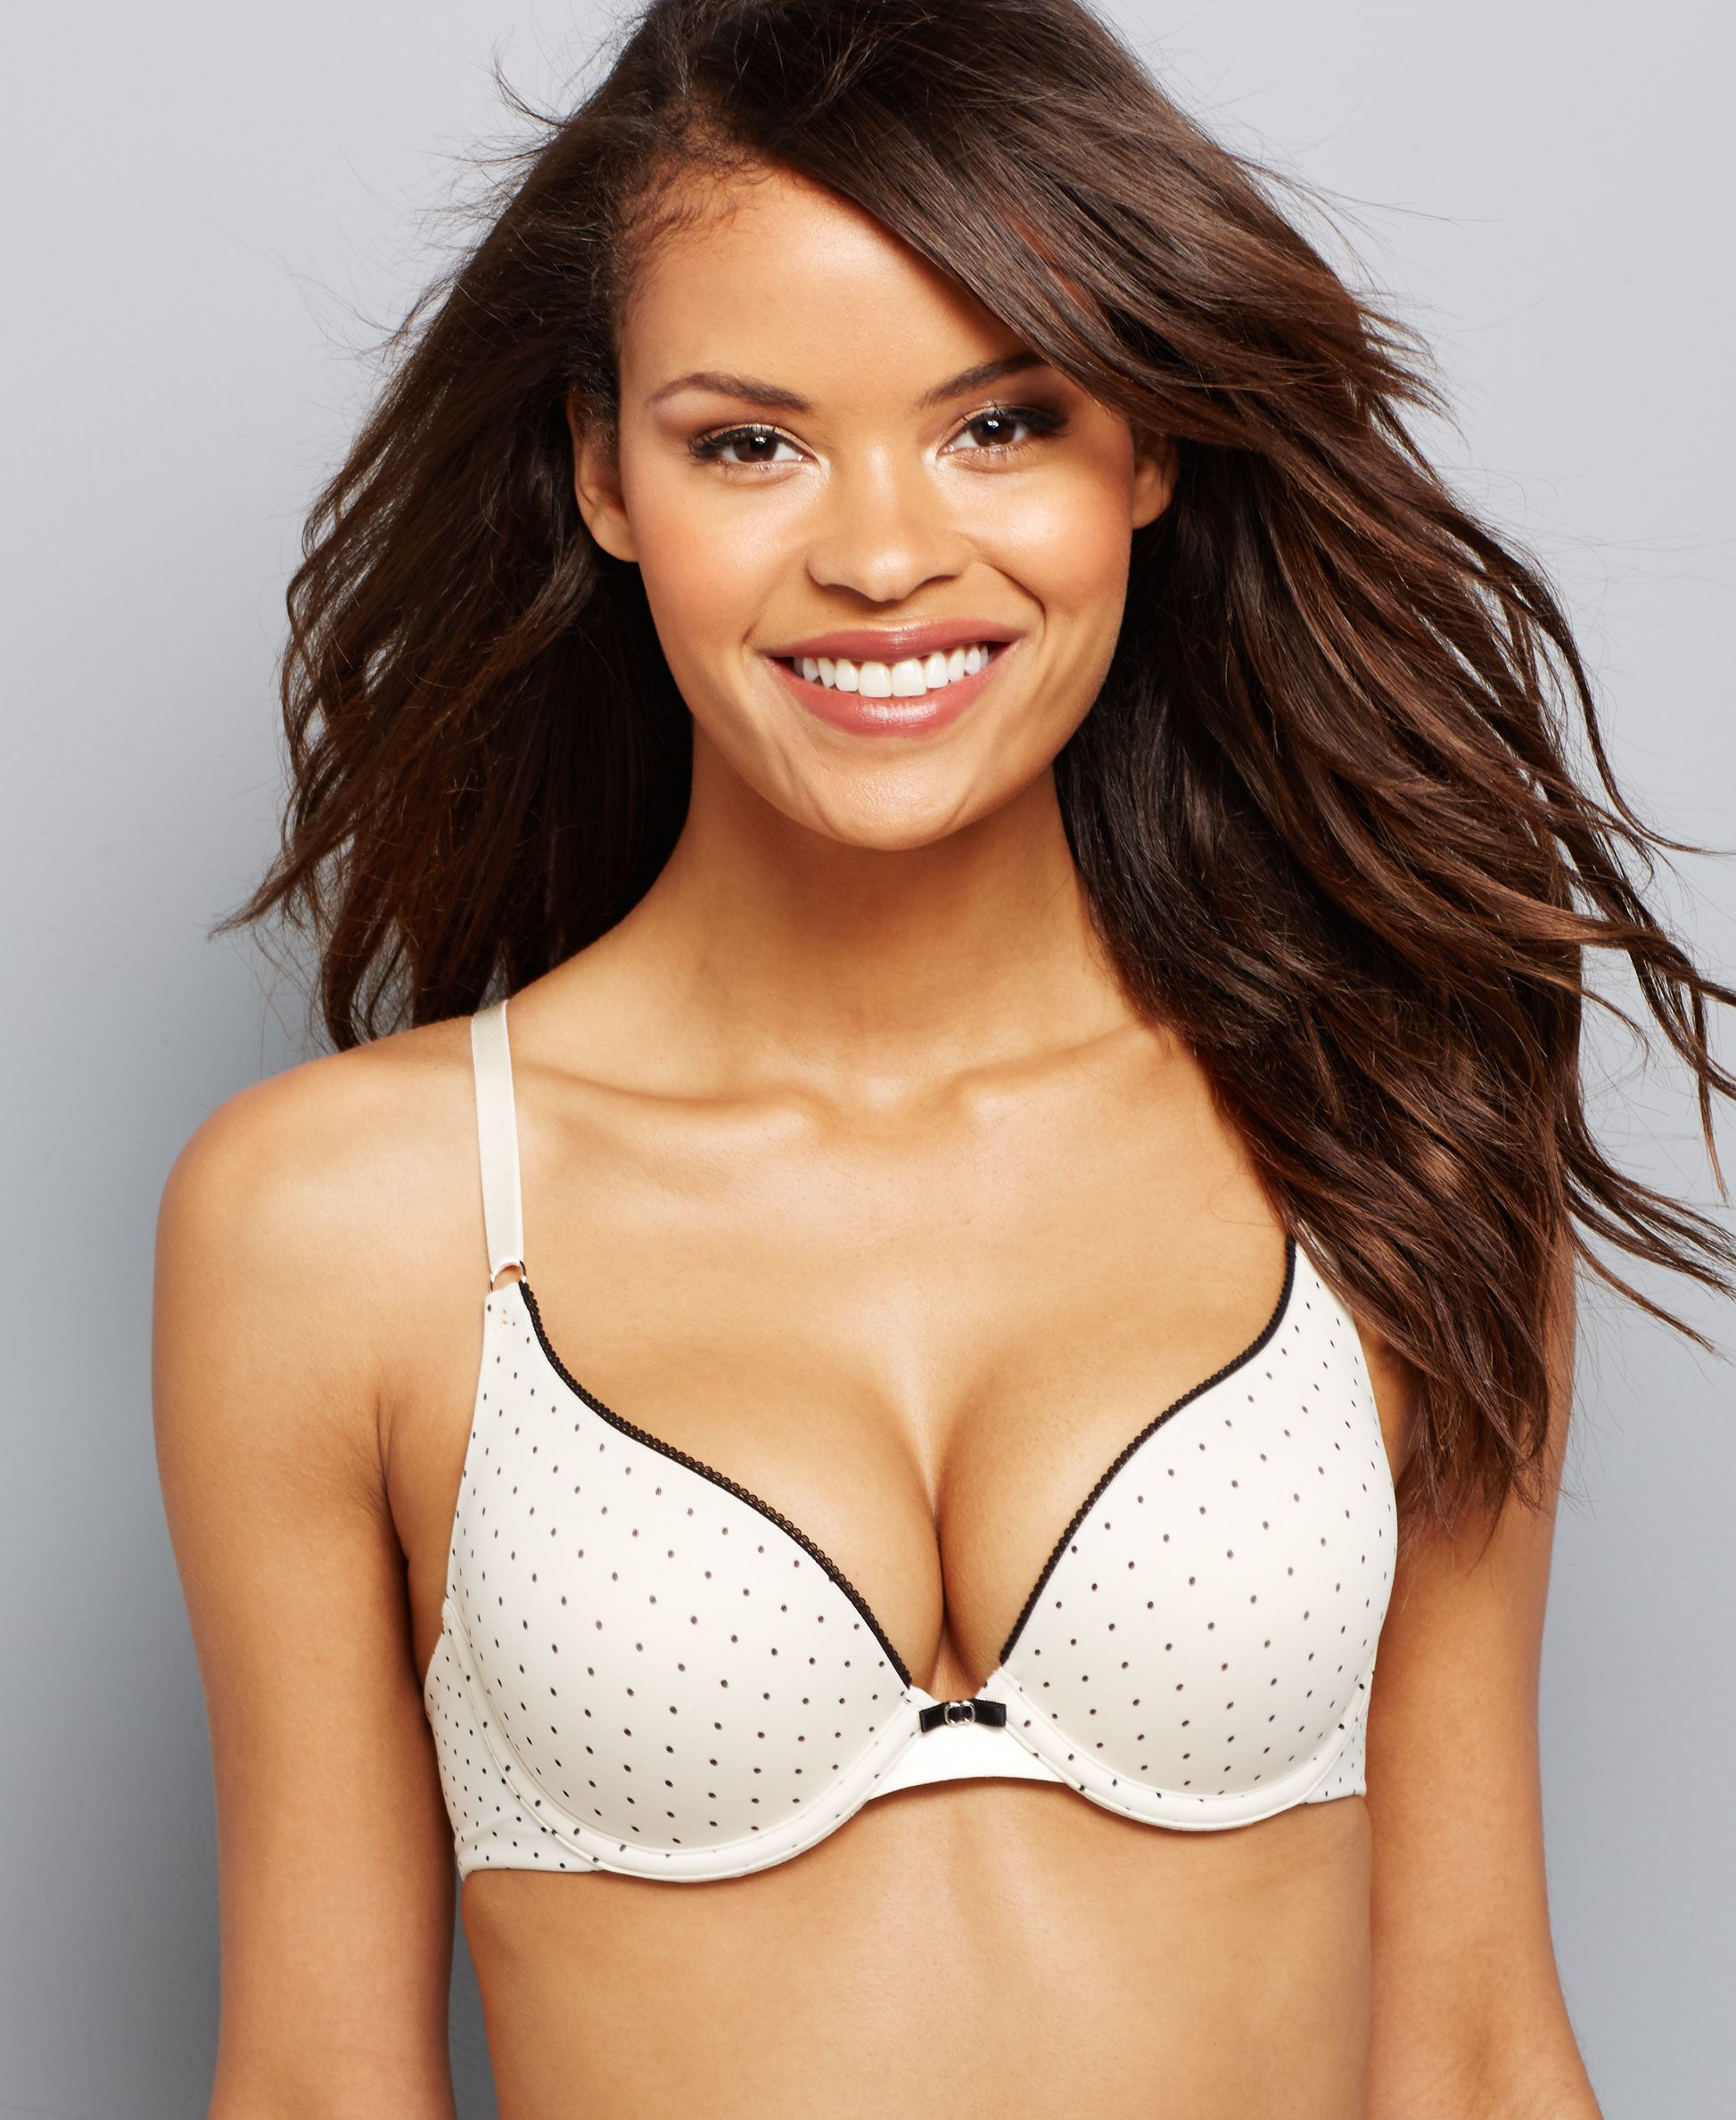 Lily of france Extreme Ego Boost Tailored Push Up Bra 2131101 in ...